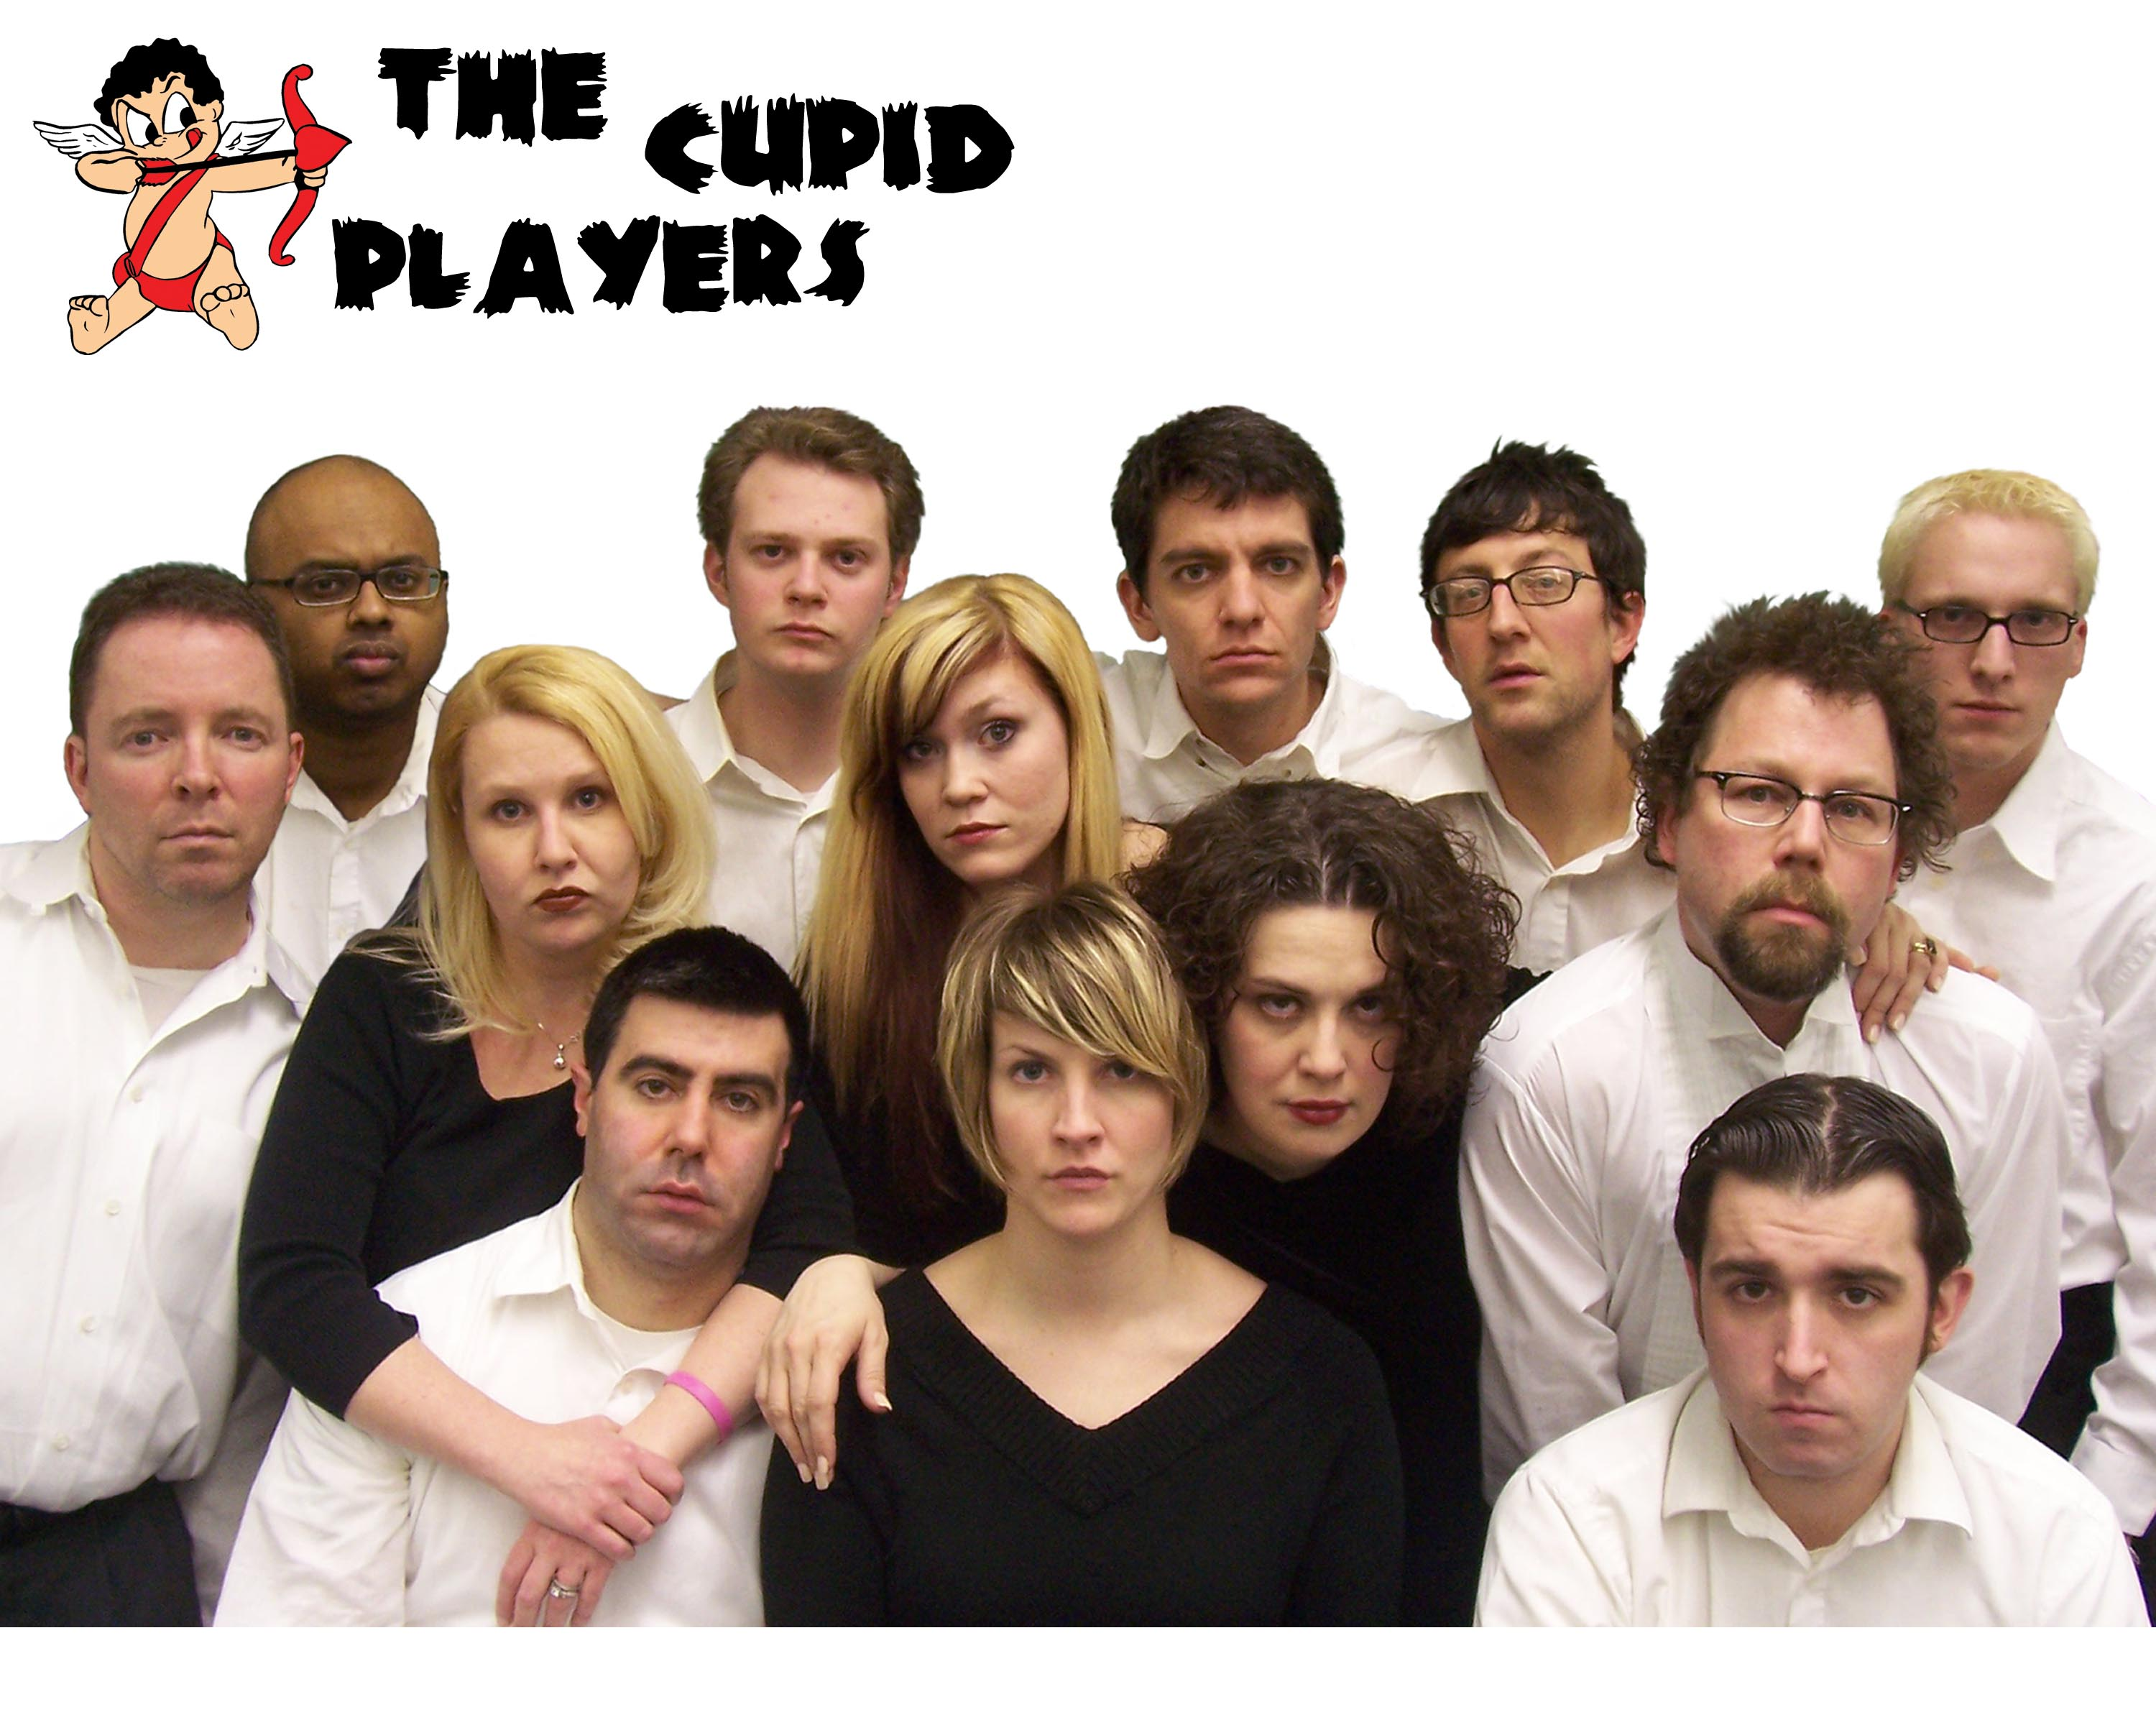 The Cupid Players.